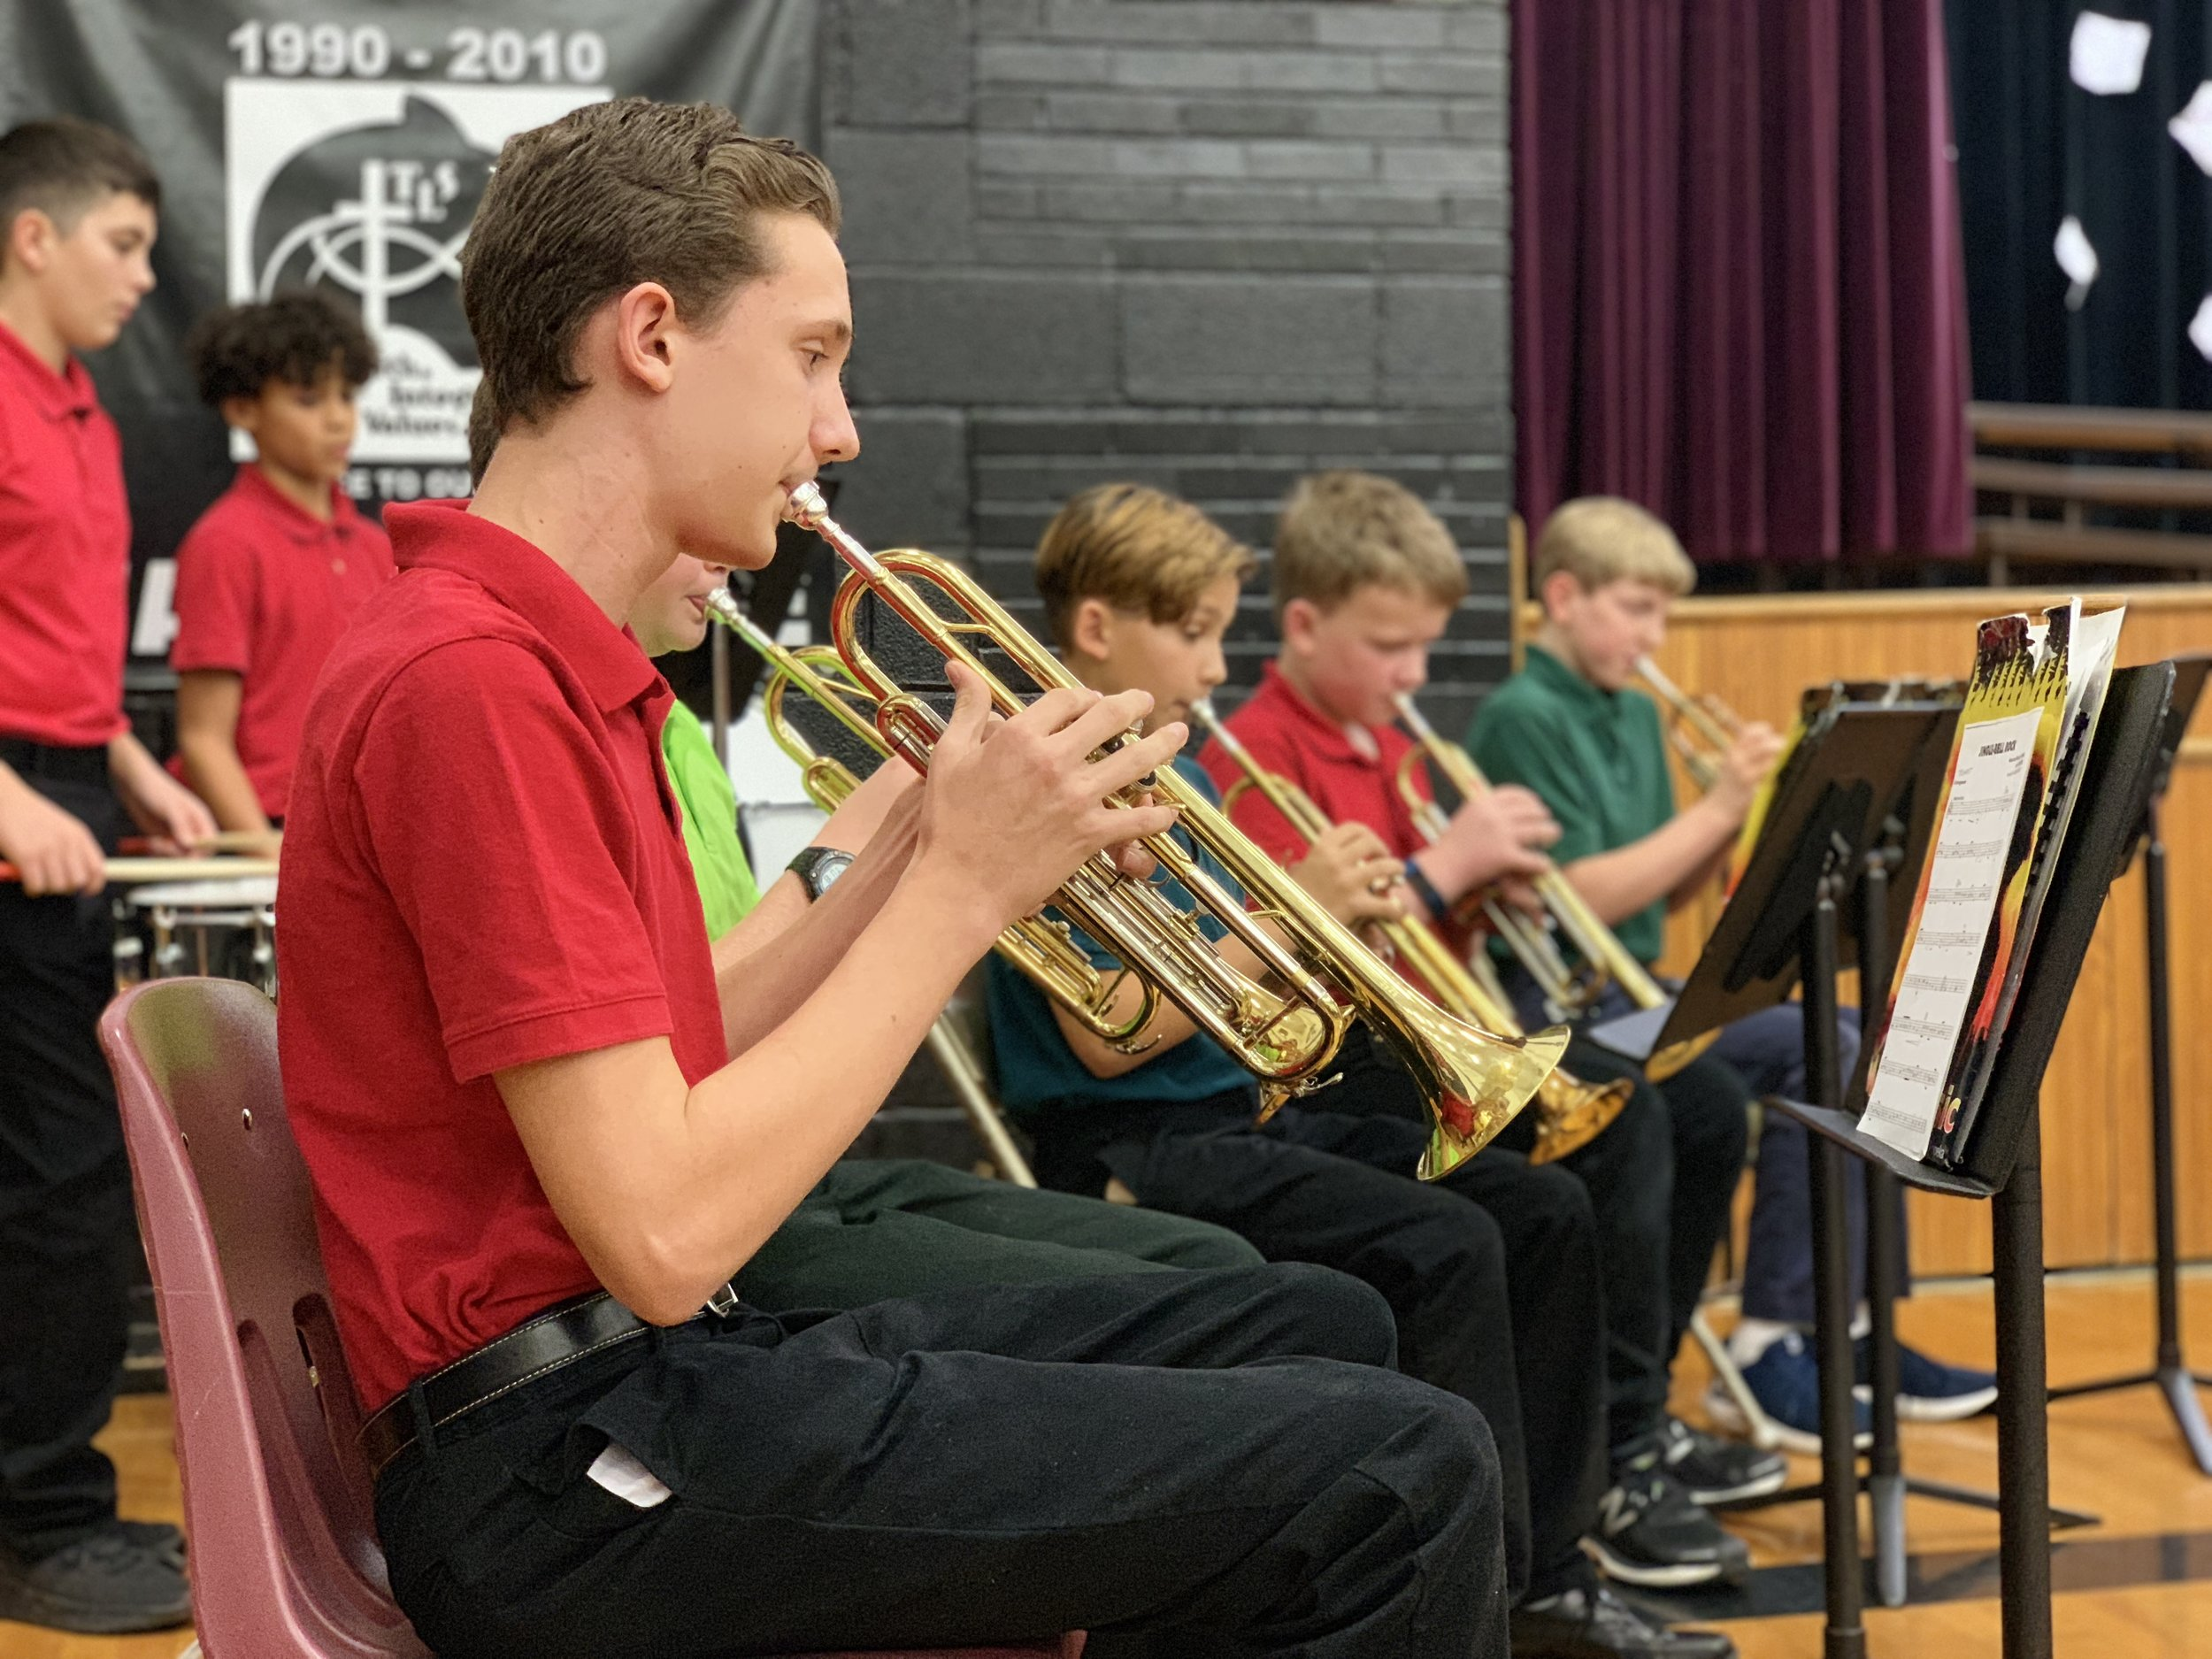 Arts and Athletics - Forming well rounded individuals means not only training the mind, but also training the body and teaching beauty. TLS offers opportunities for students to engage in the fine arts and athletics.